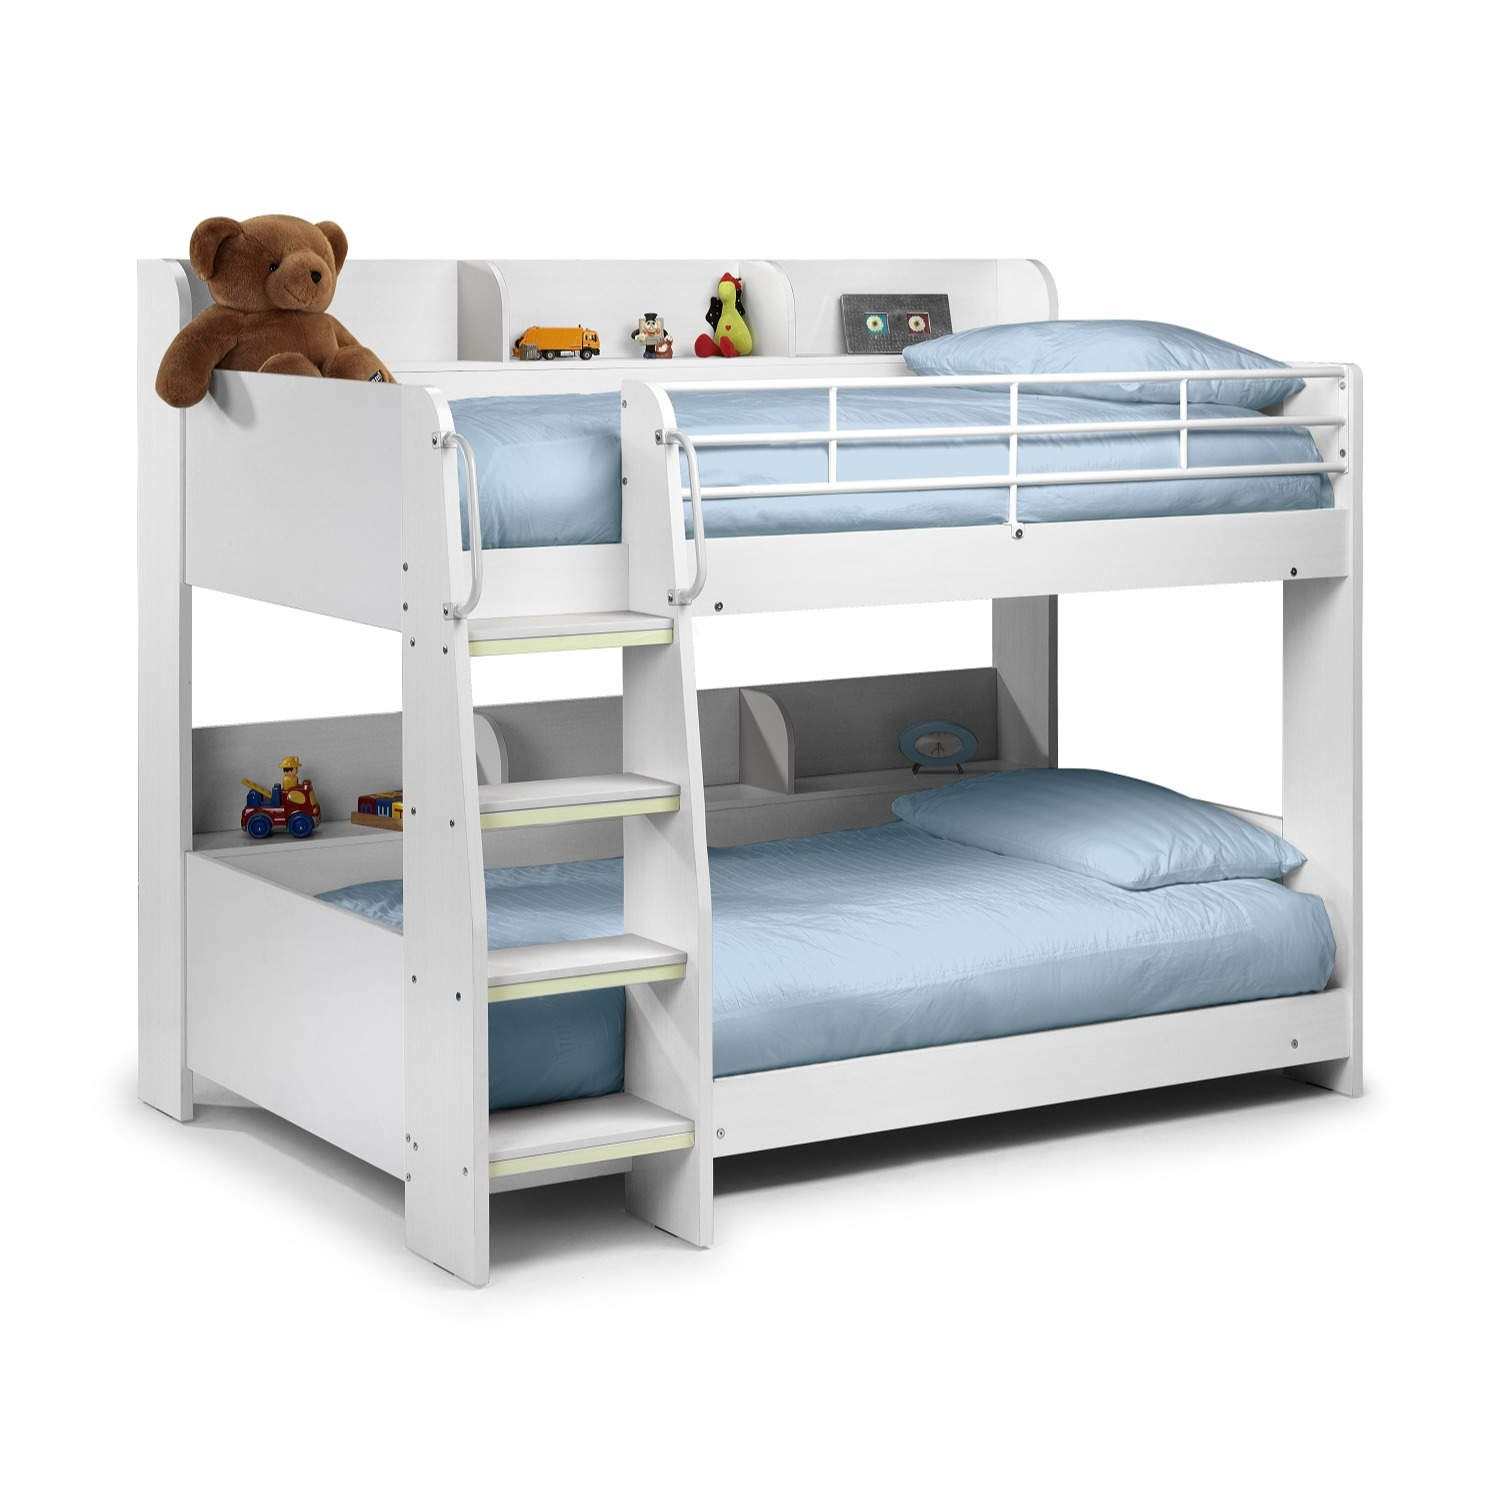 Modern kids white wooden julian bowen domino bunk bed for Modern kids bunk beds